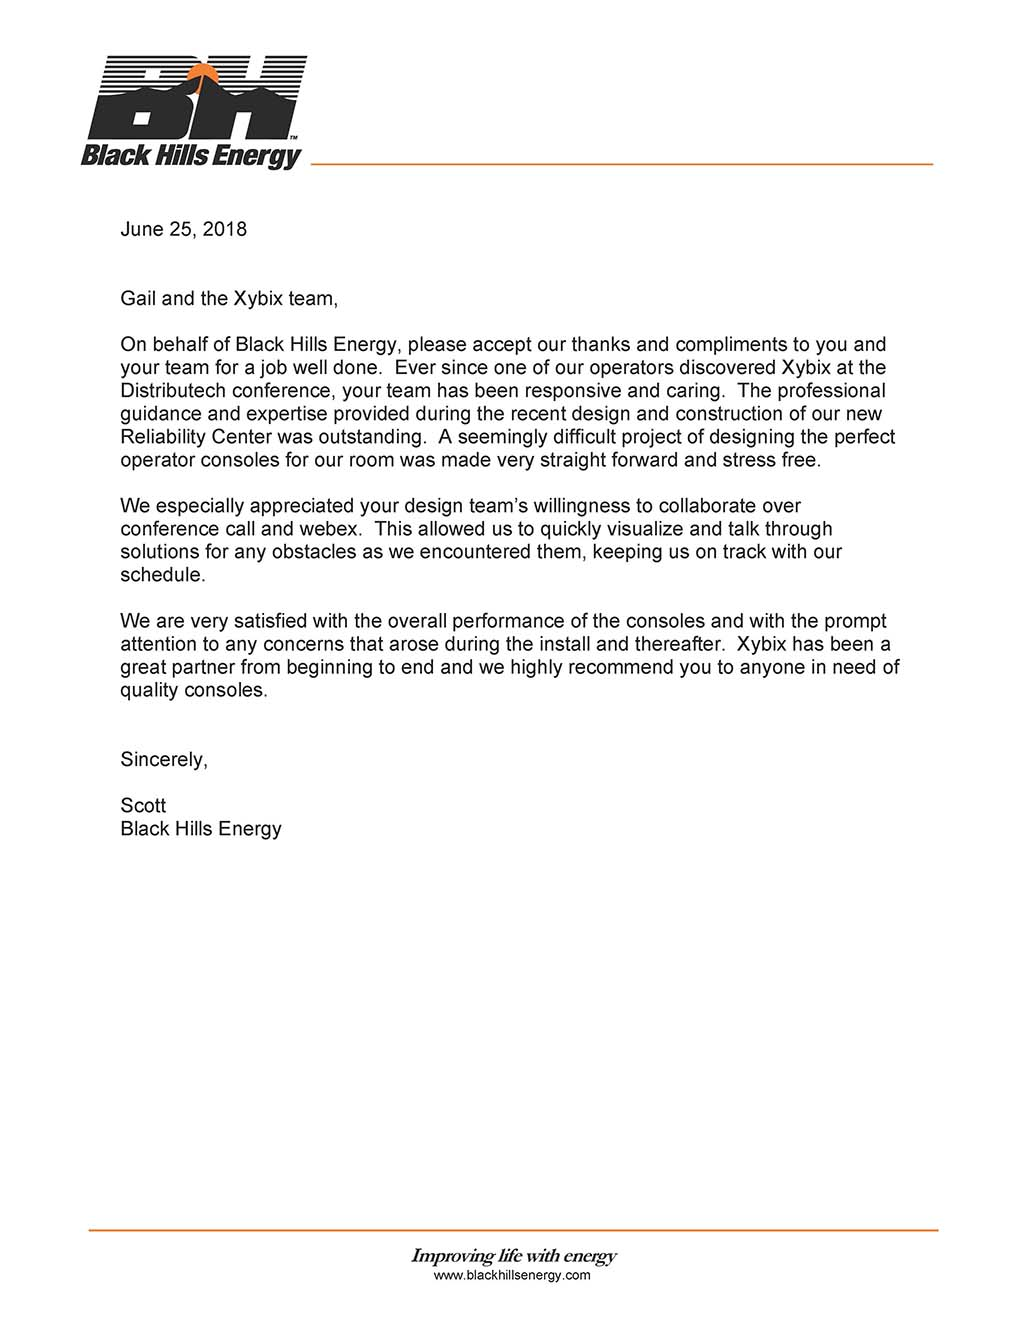 Black Hills Energy - Xybix Reference Letter